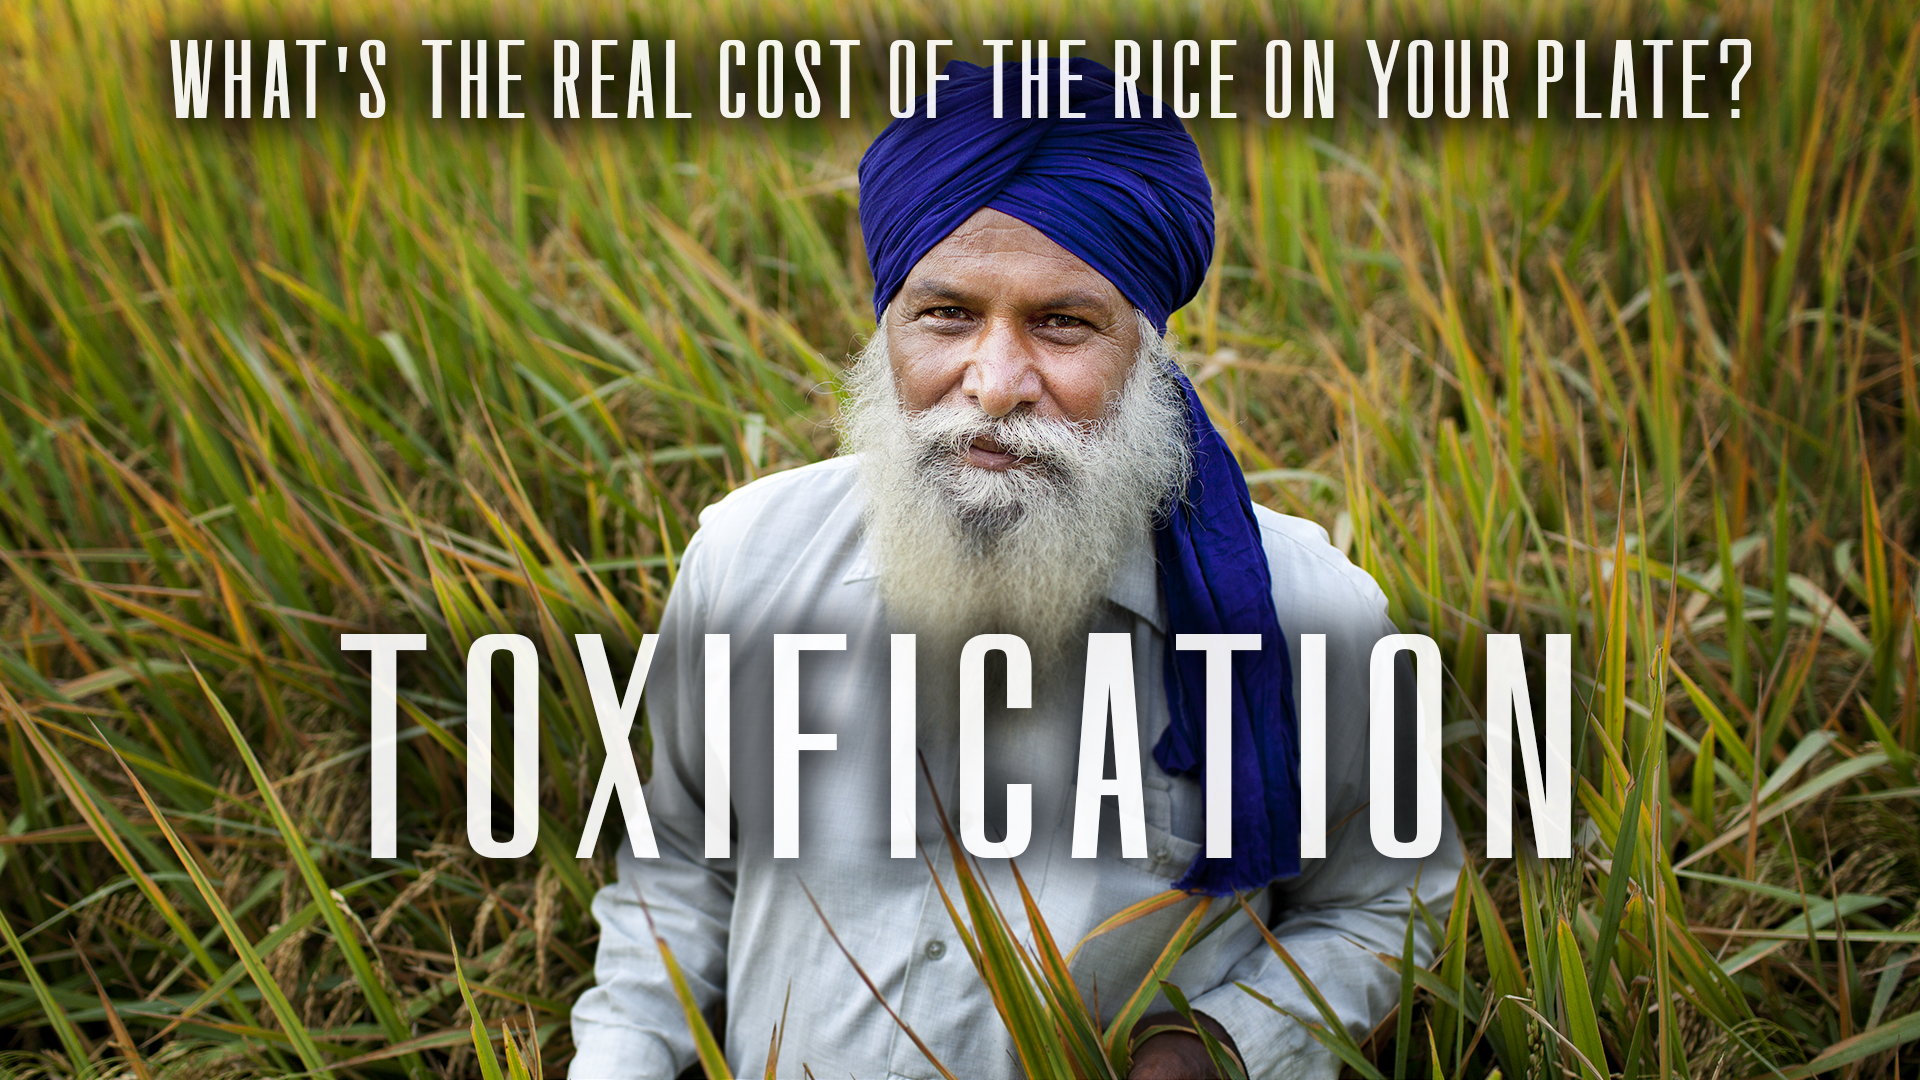 Image shows a Panjabi farmer in a field. Text reads: What is the real cost of the rice on your plate? Toxification.